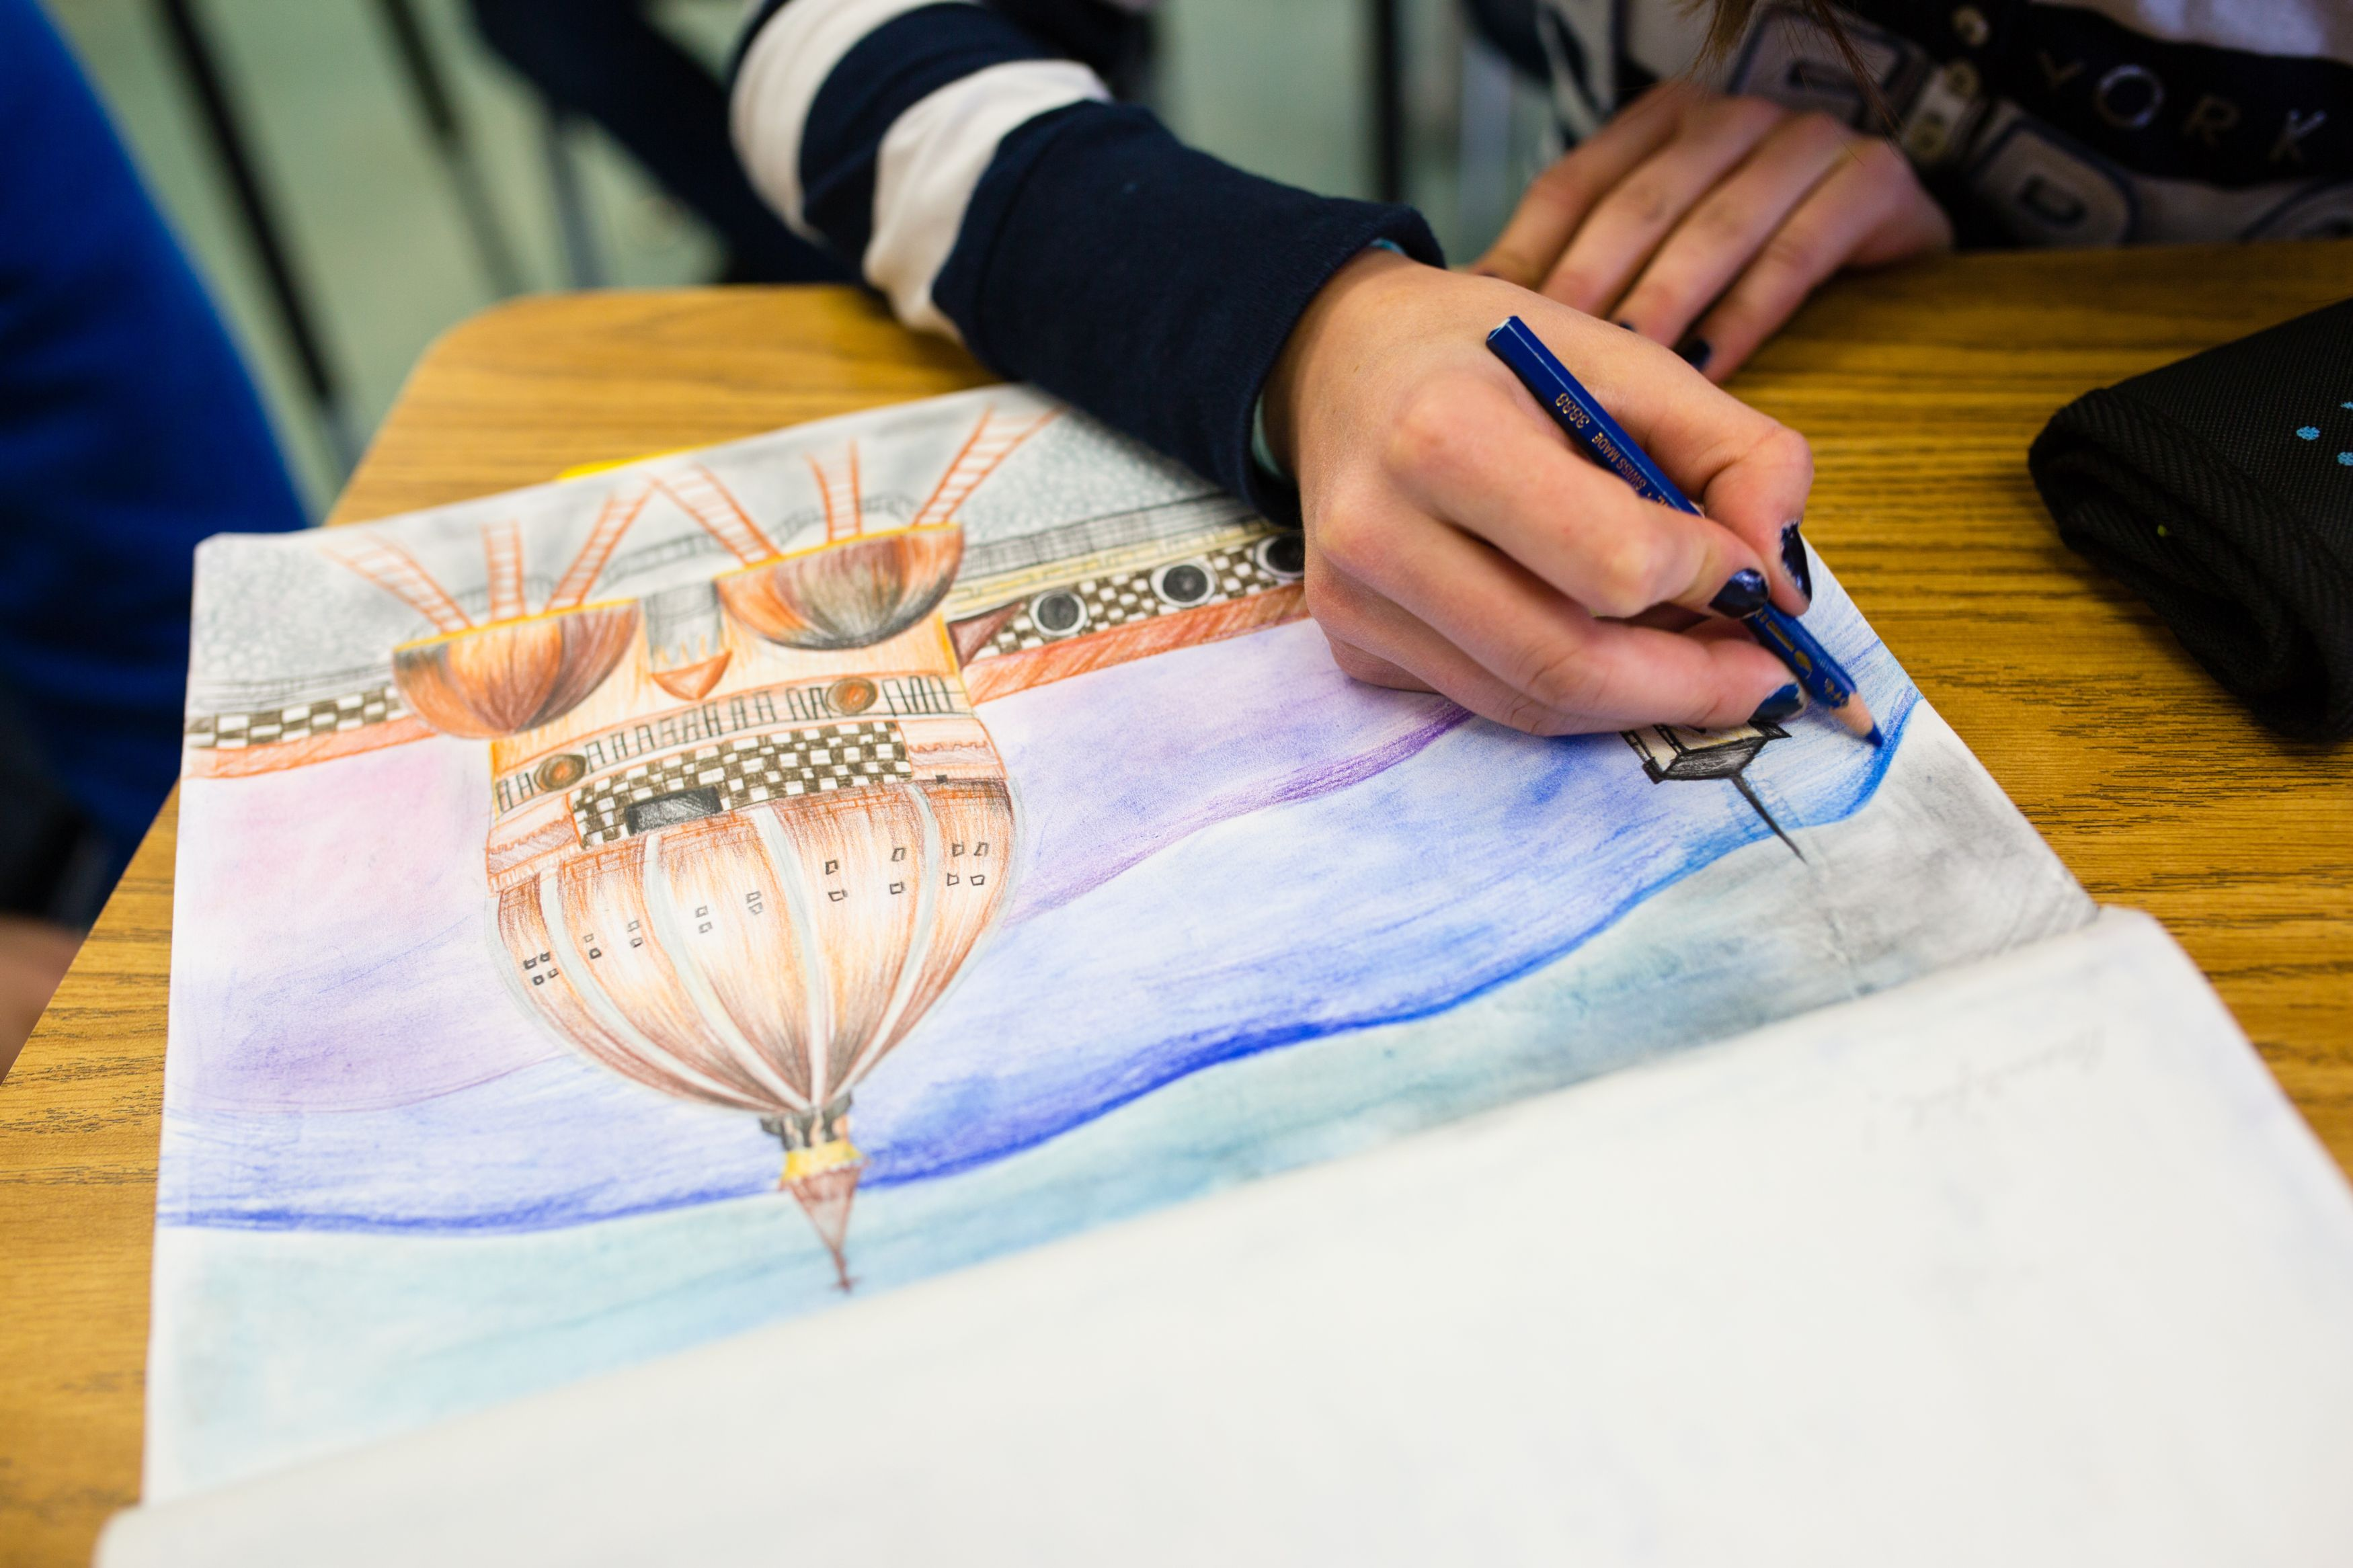 Student Working on Textbook Drawing